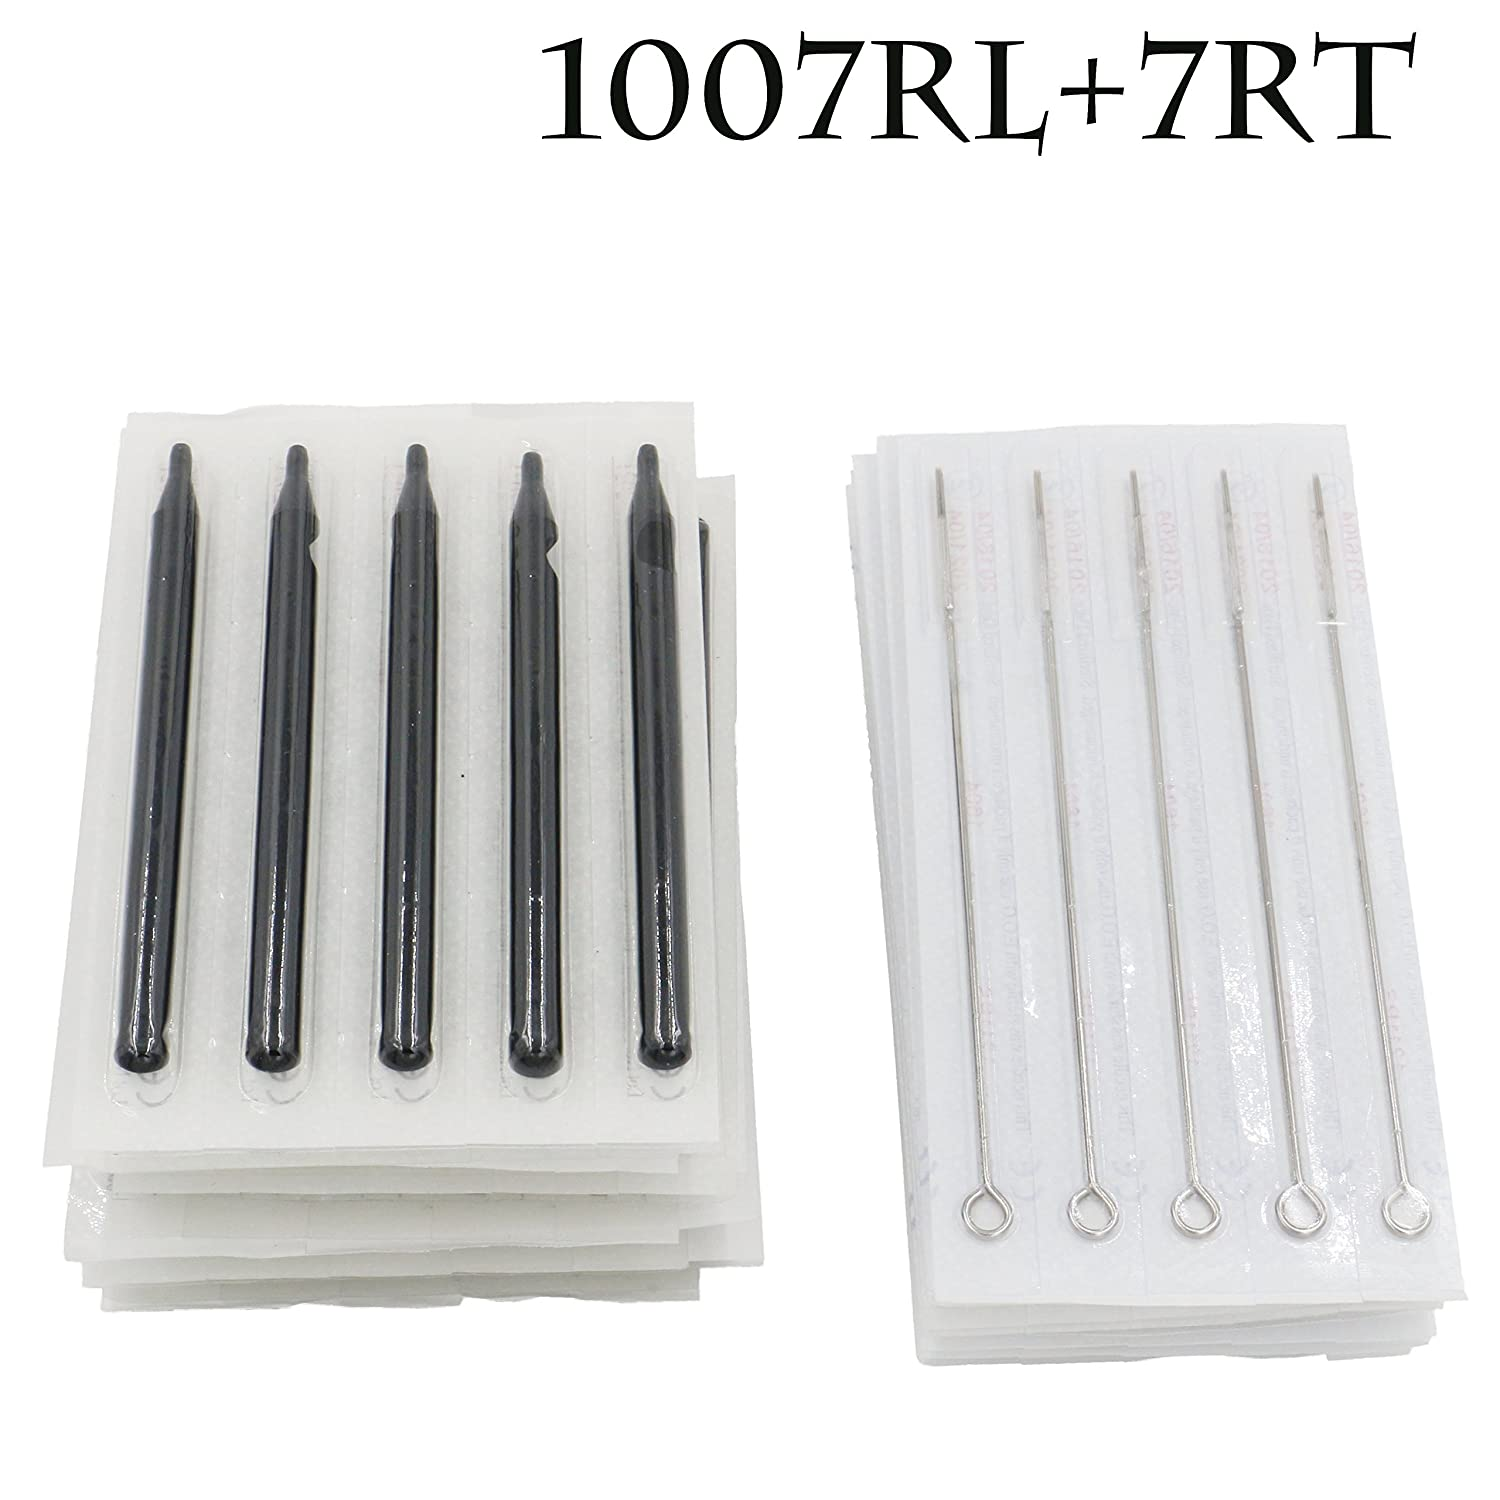 Yuelong® 50pcs Disposable Sterile Tattoo 7rl Round Liner Needles & 7r Round Long Sterile Black Tips Stem Nozzle Tube